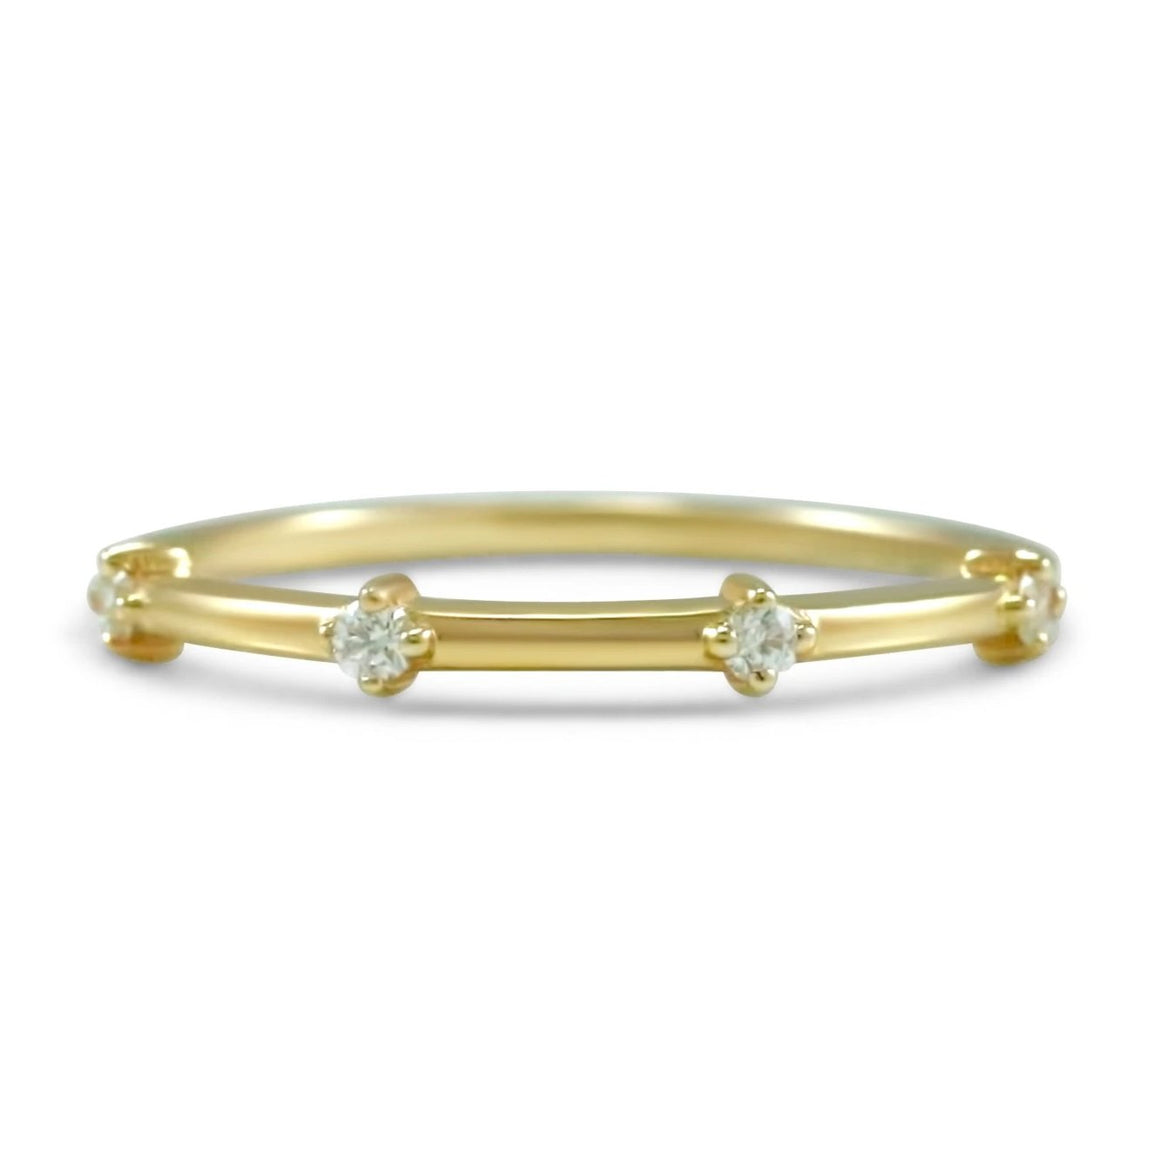 diamond wedding band prong set round diamonds available in 14k yellow, white and rose gold